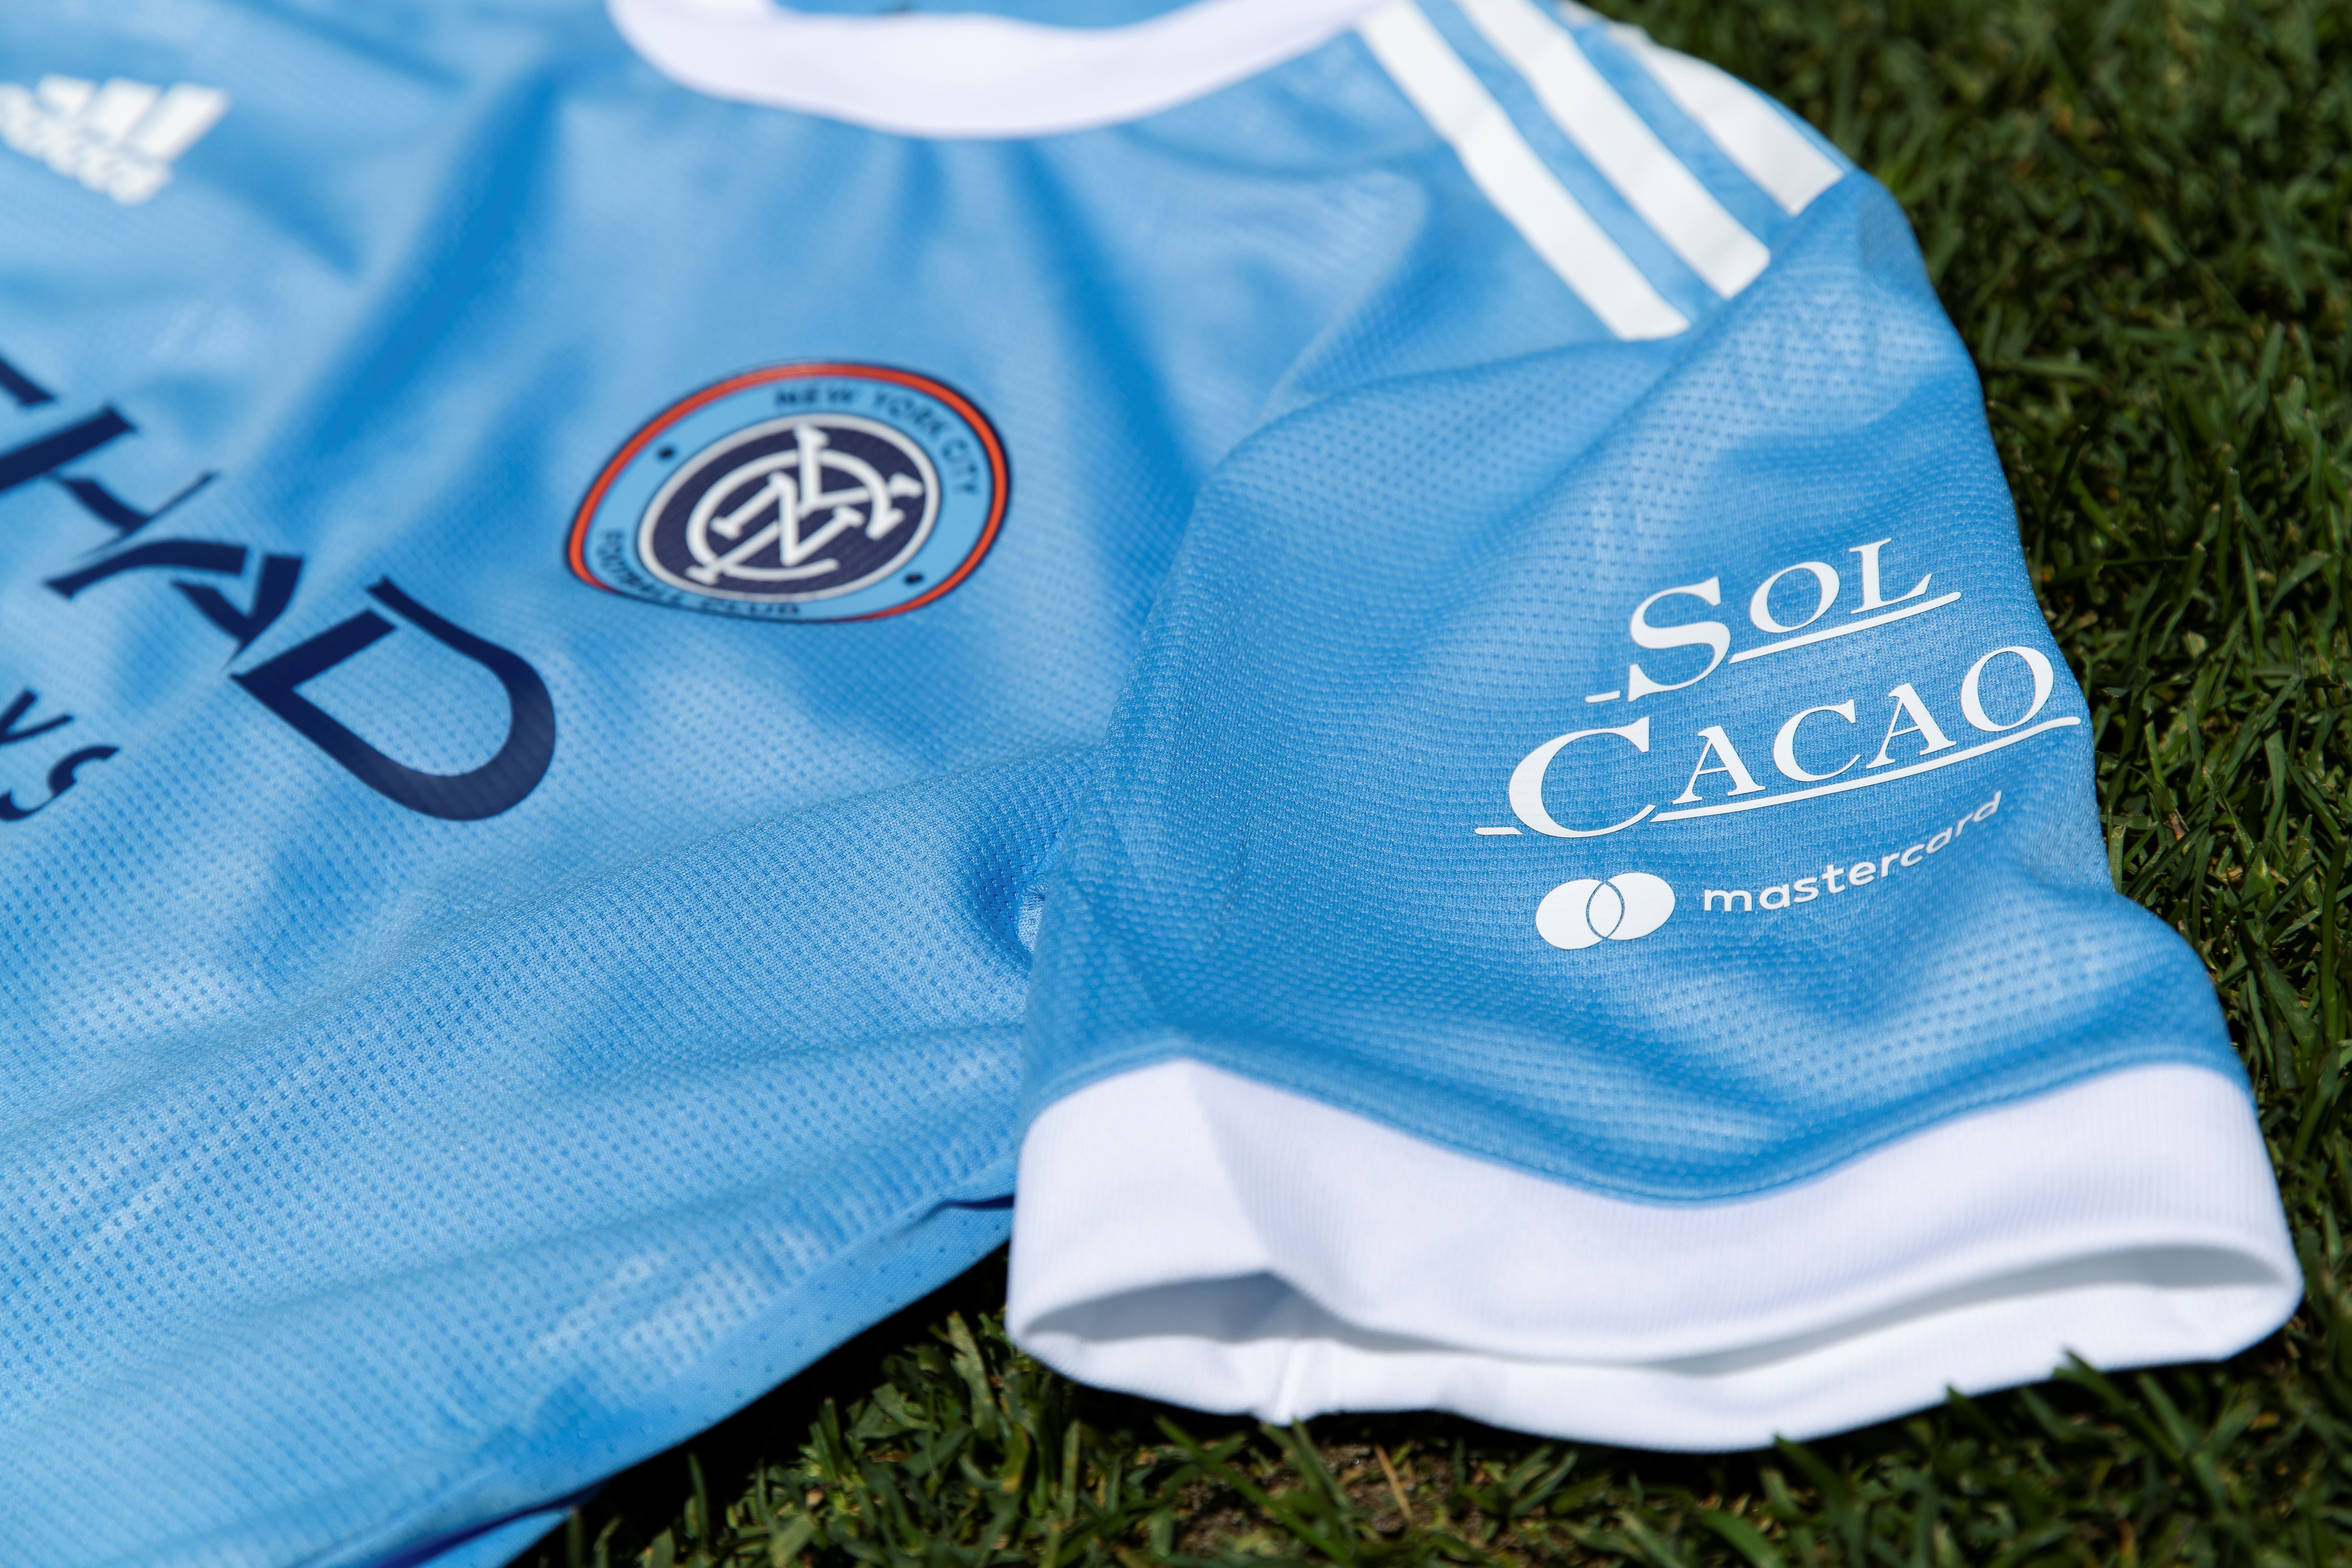 The logo of Bronx craft chocolate company Sol Cacao is shown on the left sleeve of Major League Soccer's New York City Football Club's jersey in this undated handout photo. NYCFC.COM/Handout via REUTERS